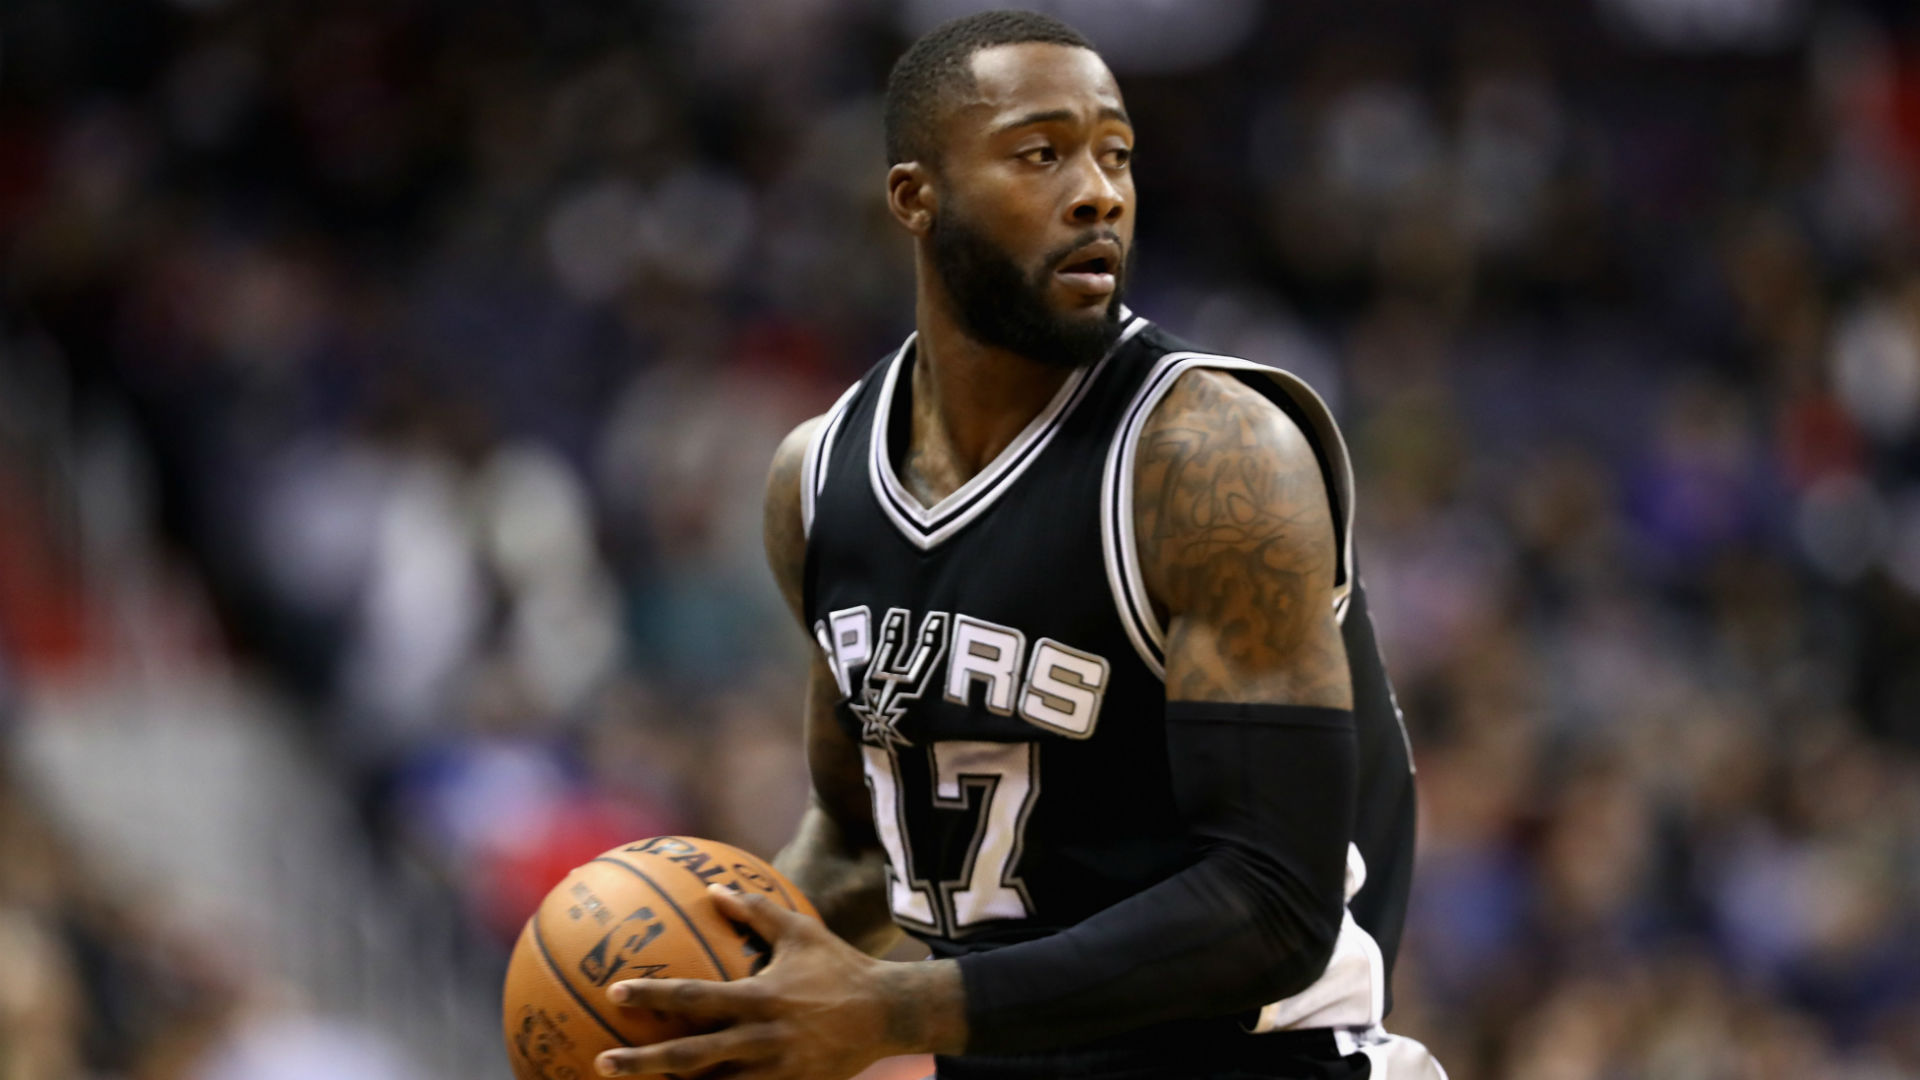 Spurs renounce rights to Jonathon Simmons